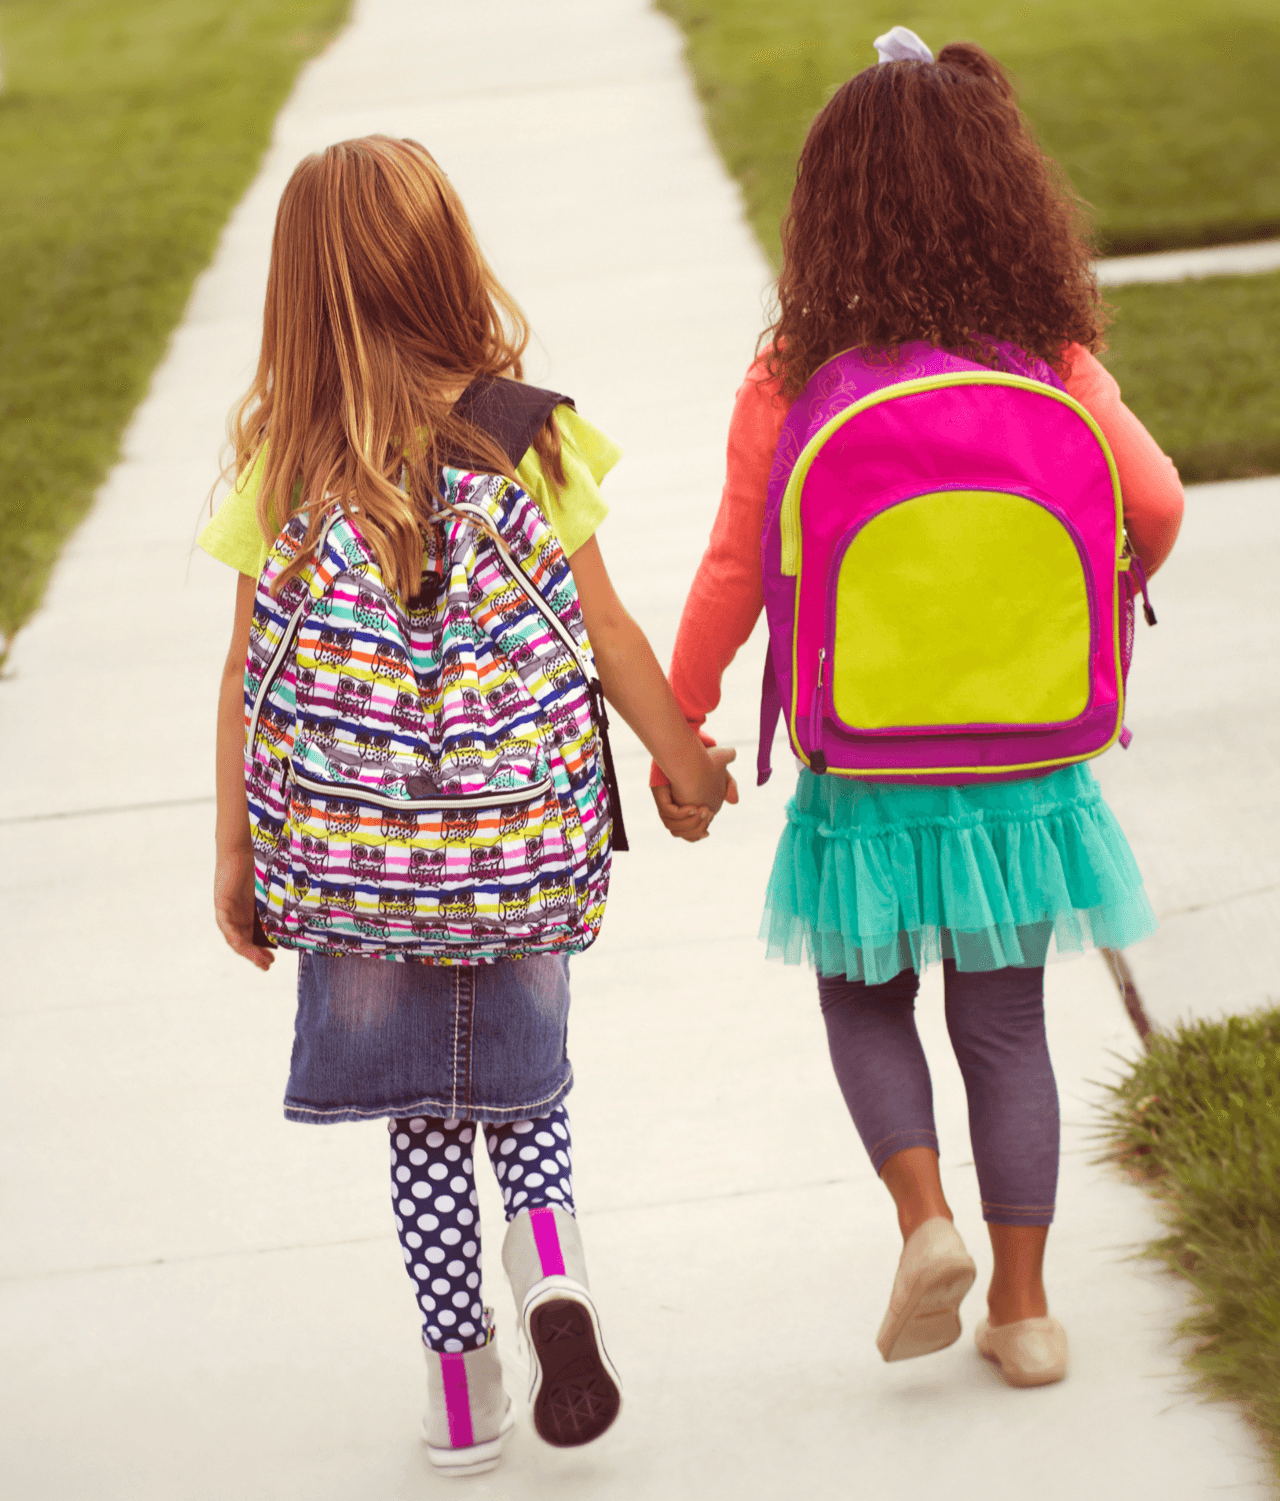 Pacesetter's Community Focus: Henley Heights Girls Walking image